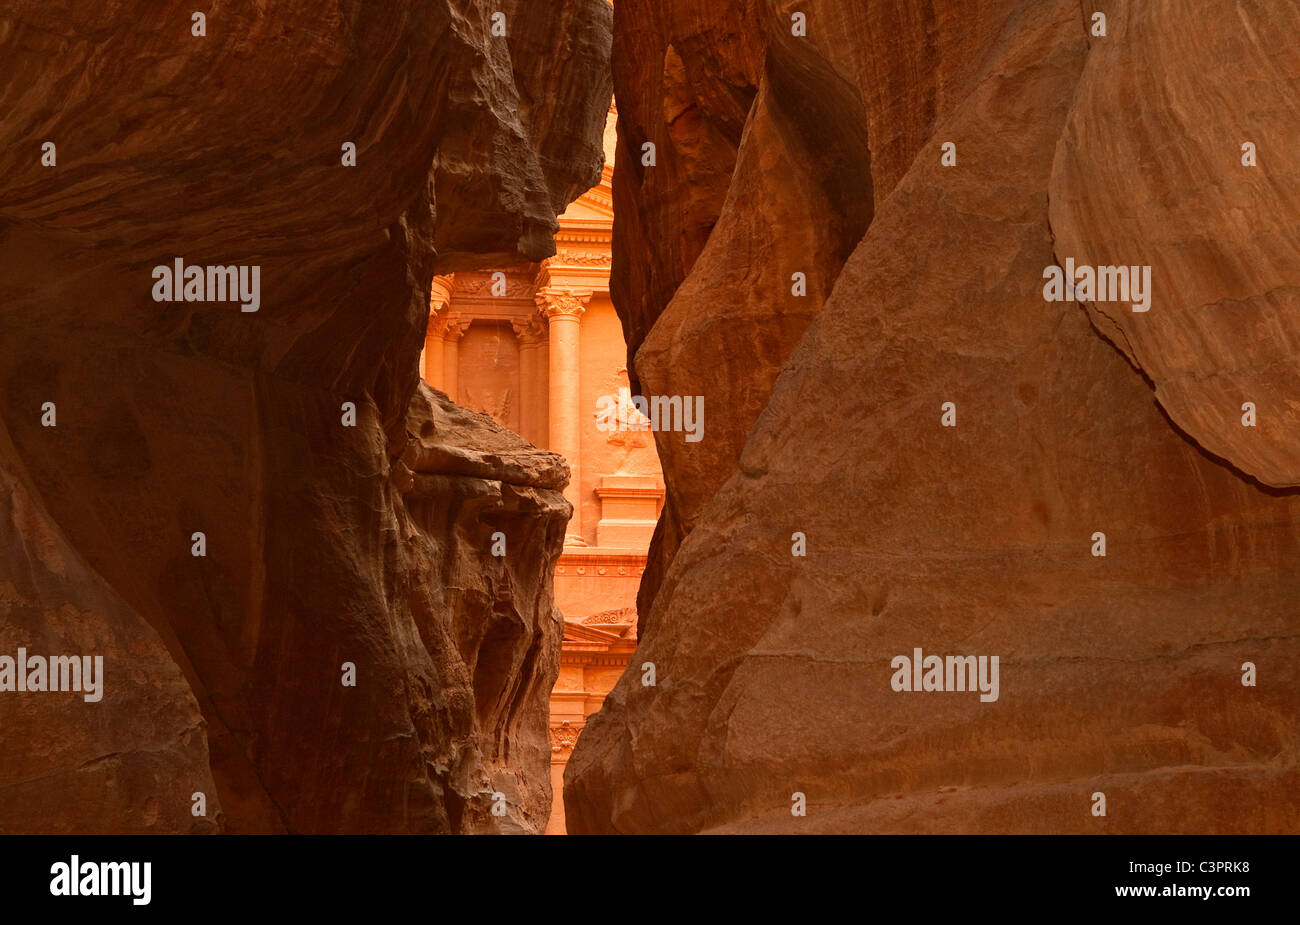 A view of the temple or treasury in Petra, Jordan through the sandstone slot canyon. Stock Photo